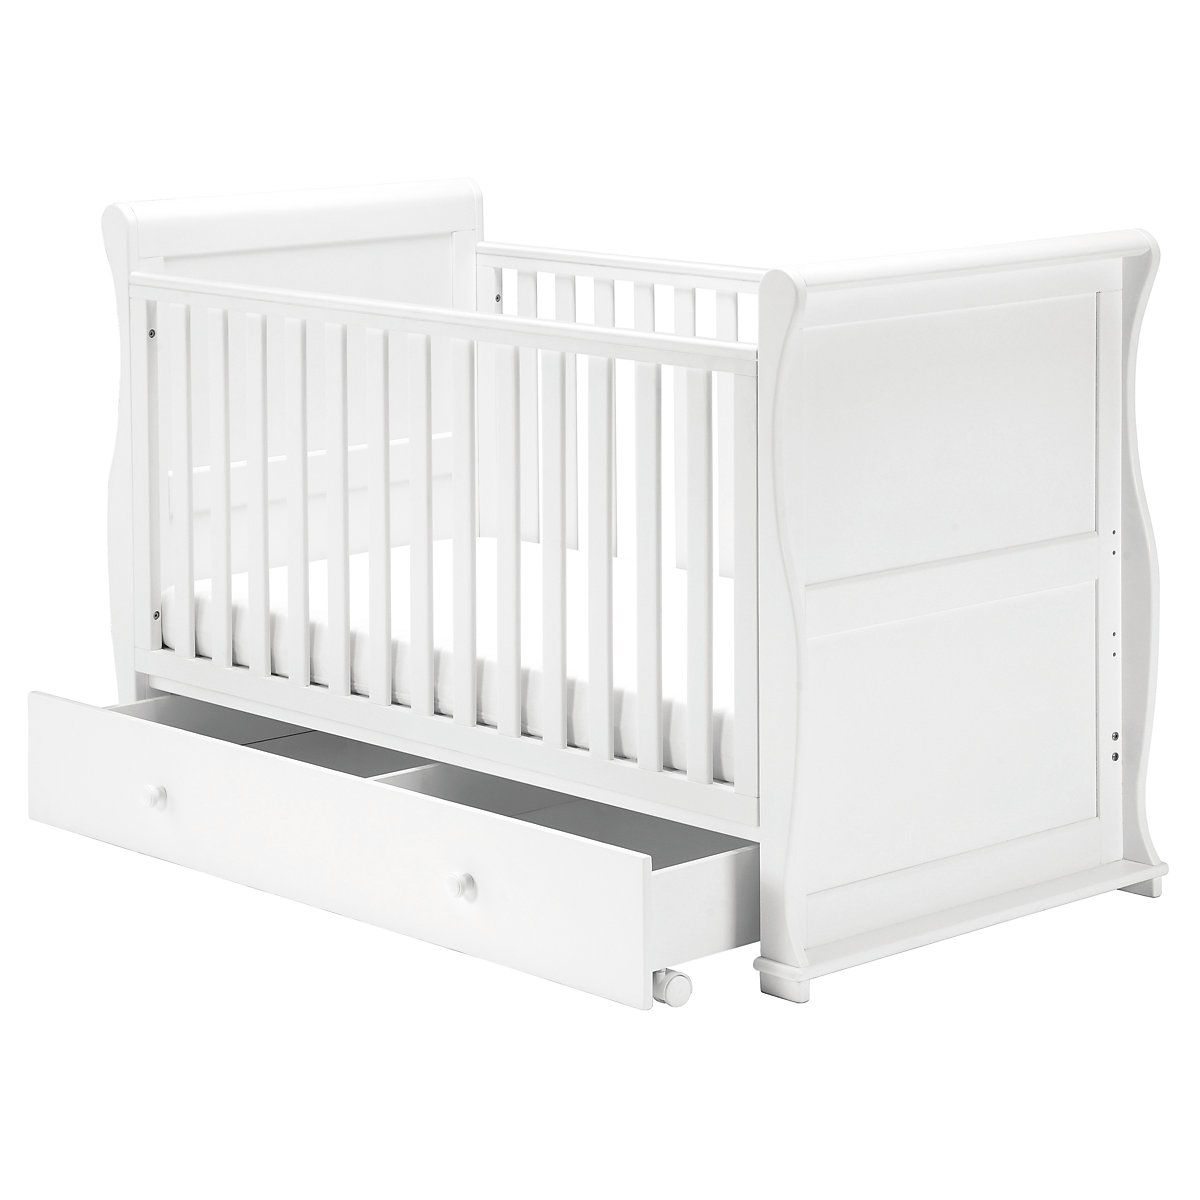 Mothercare Chiltern Sleigh Cot Bed White Cot Beds Mothercare